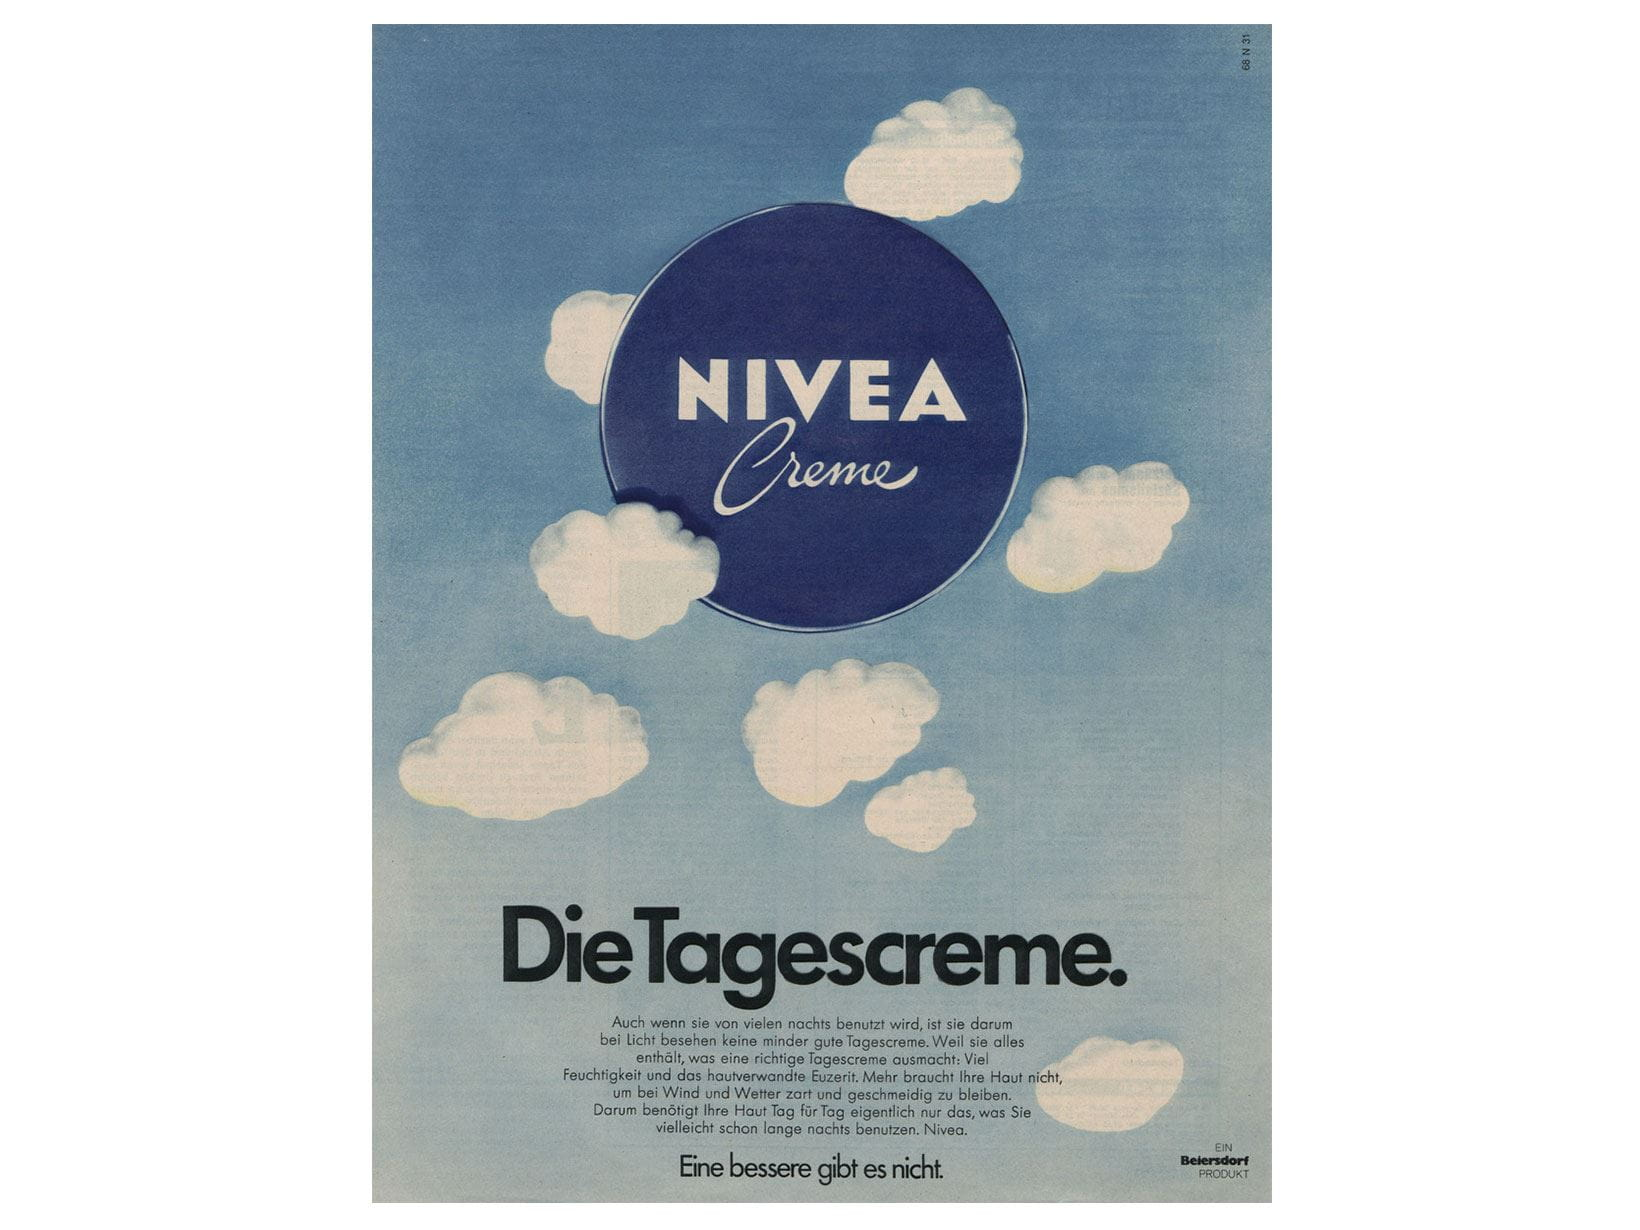 NIVEA advertisement from 1973: The day cream